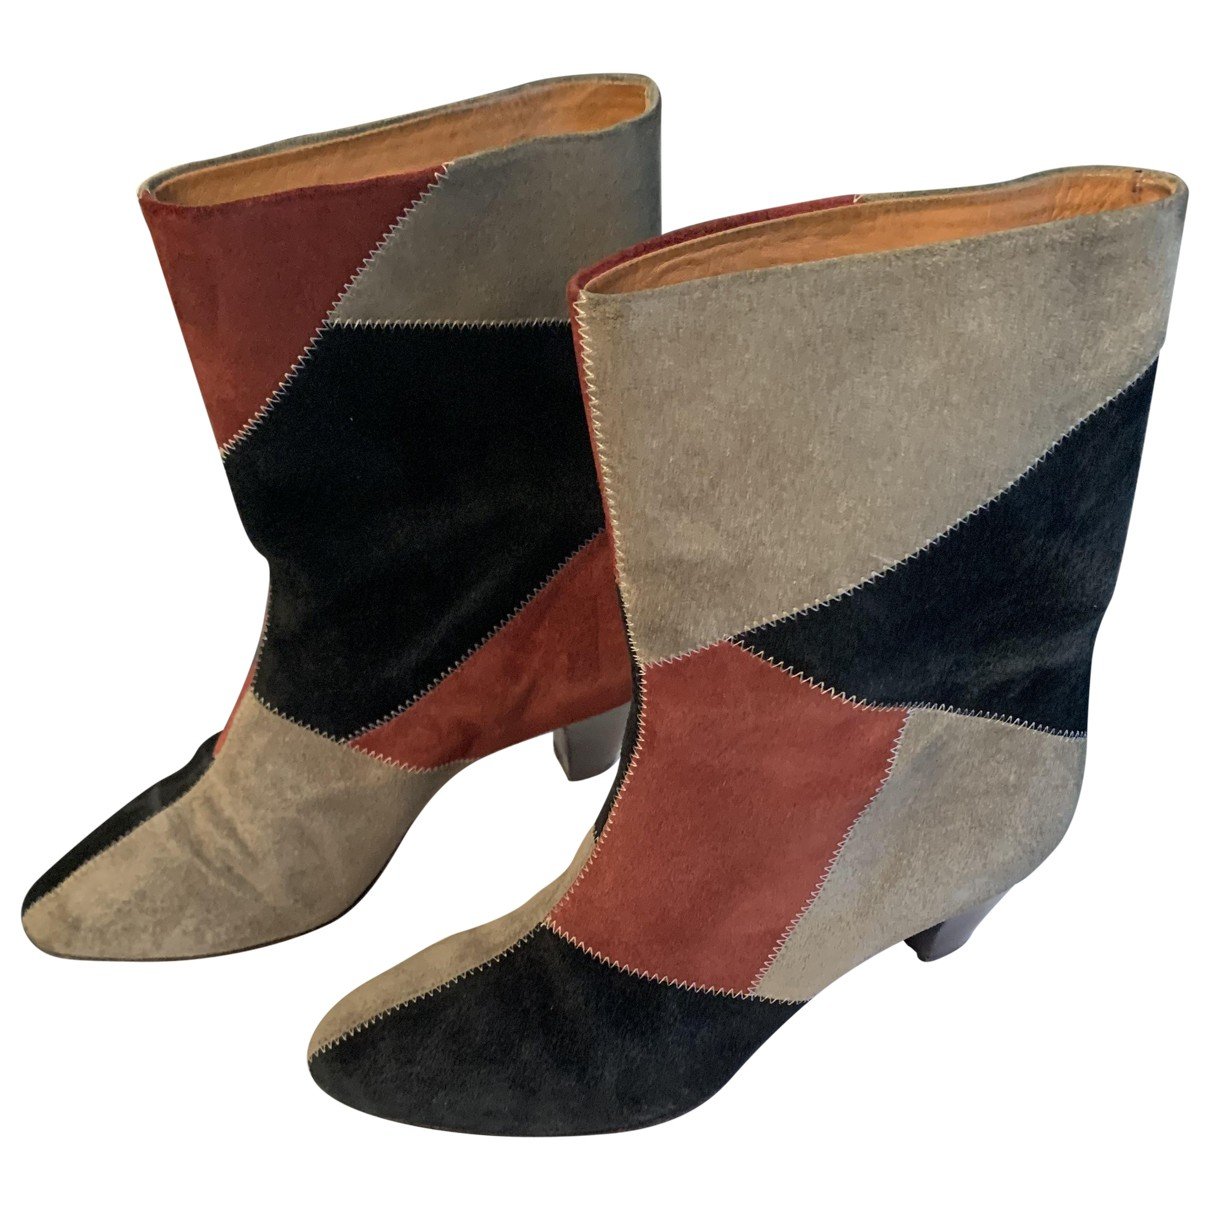 Isabel Marant N Multicolour Suede Boots for Women 38 EU